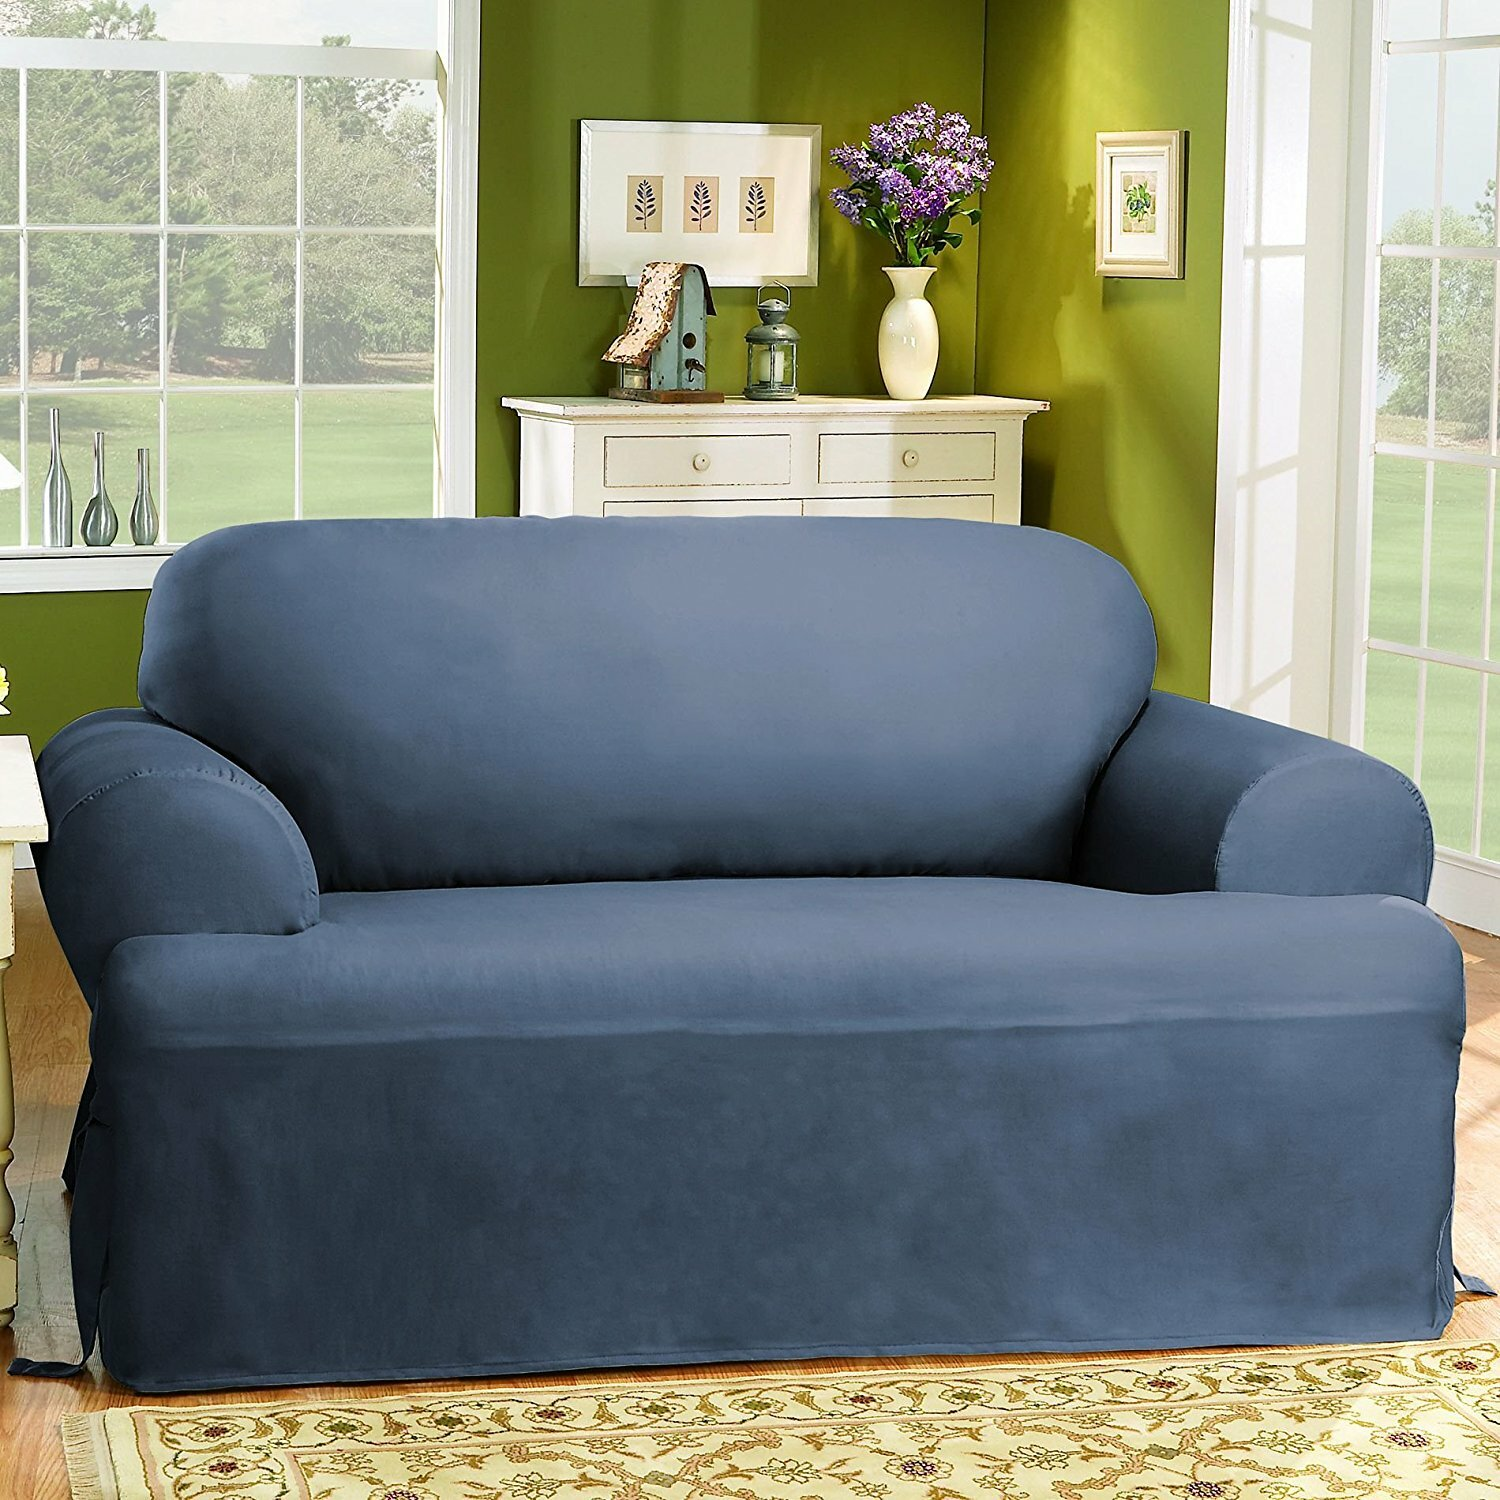 sure fit cotton duck t cushion loveseat slipcover reviews wayfair rh wayfair com sofa and loveseat slipcovers sets grey sofa and loveseat slipcovers